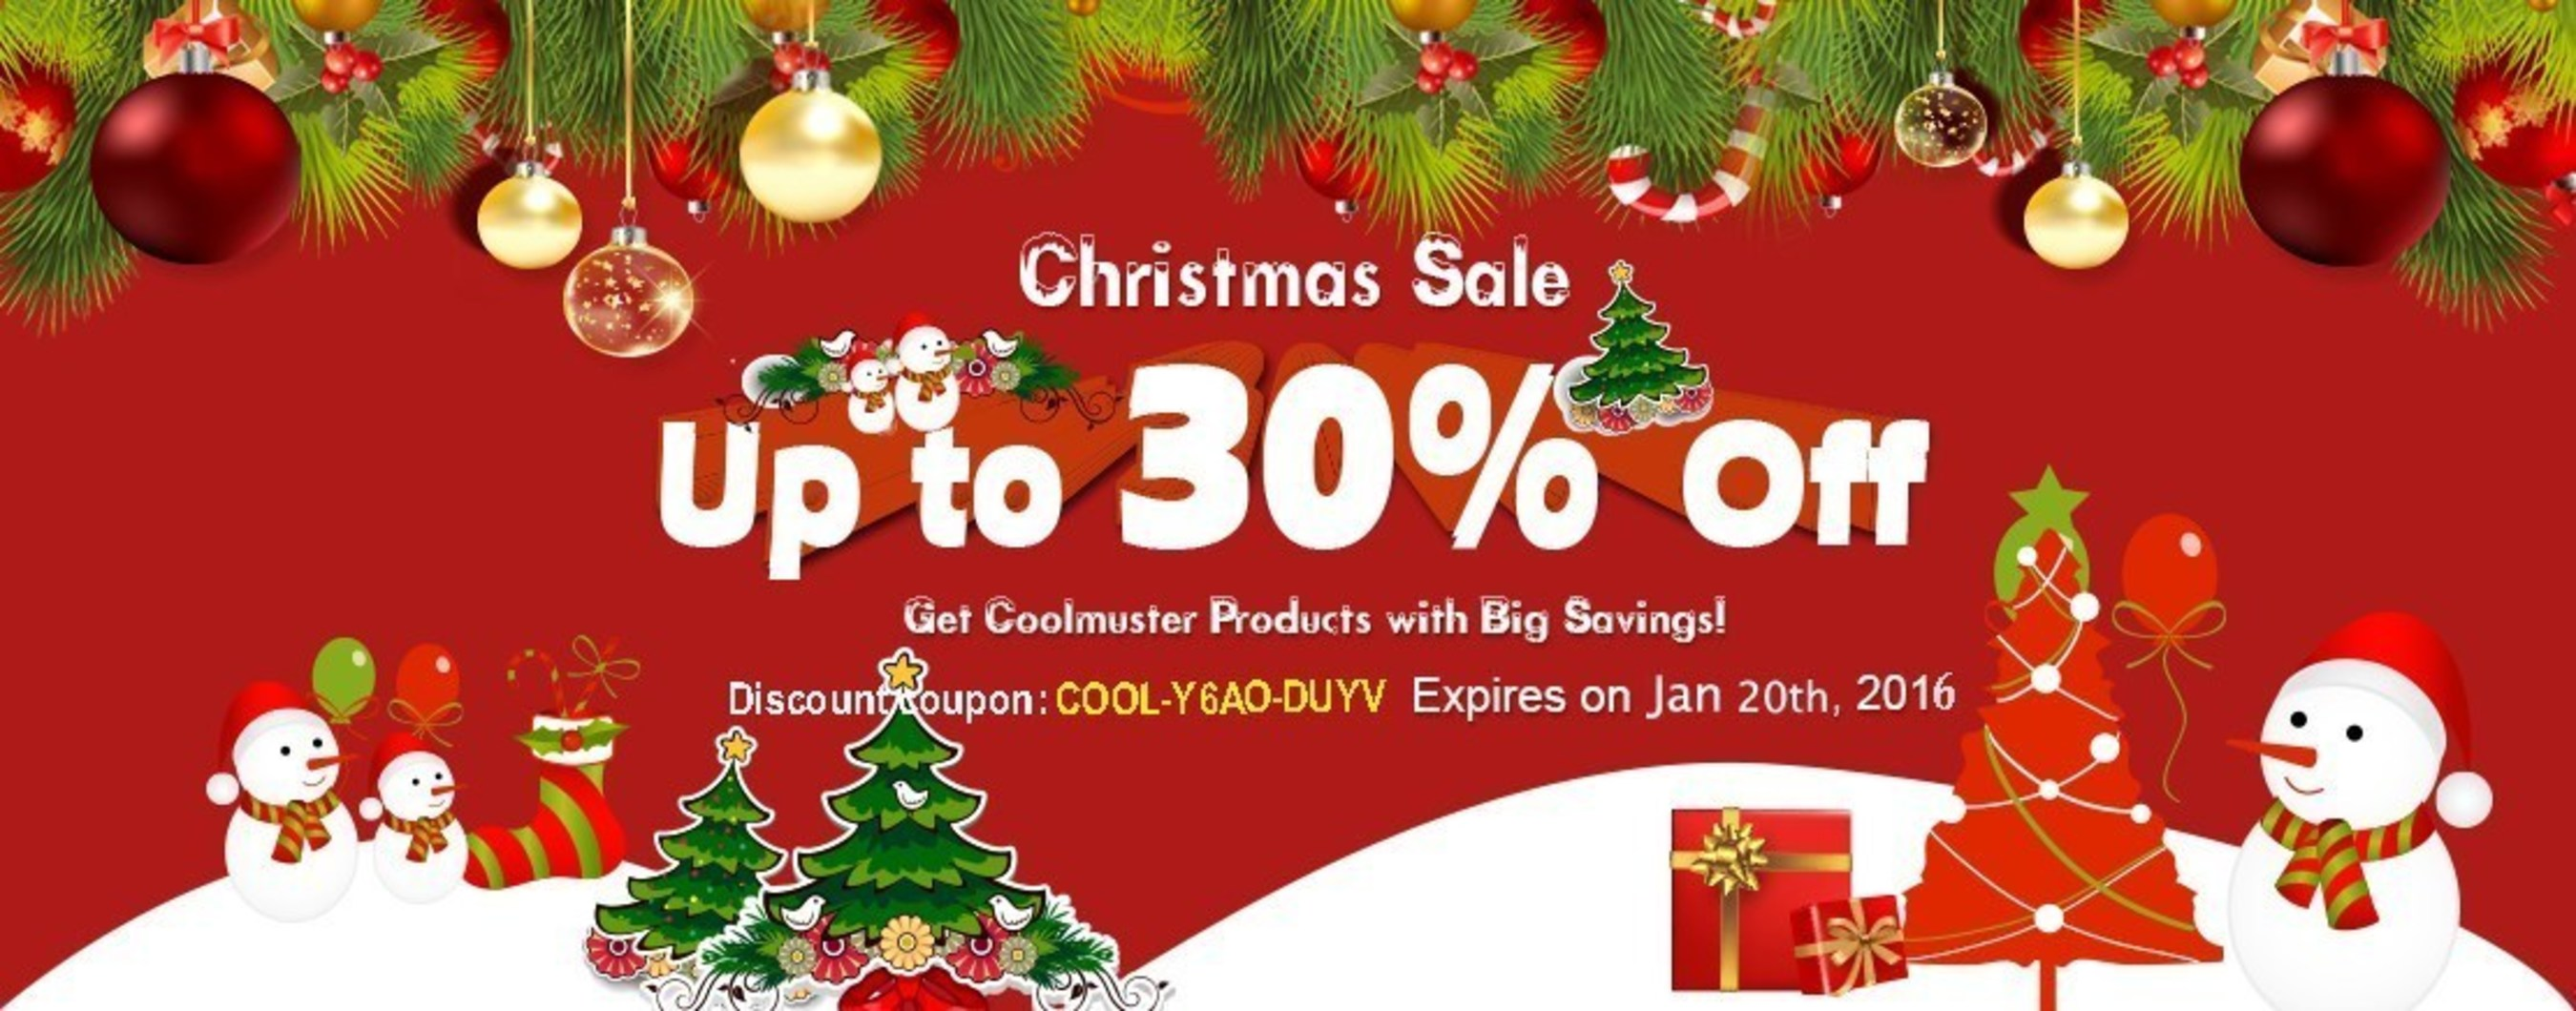 Coolmuster Unveils the Biggest Deal of All Products for the Coming Christmas Season 2015